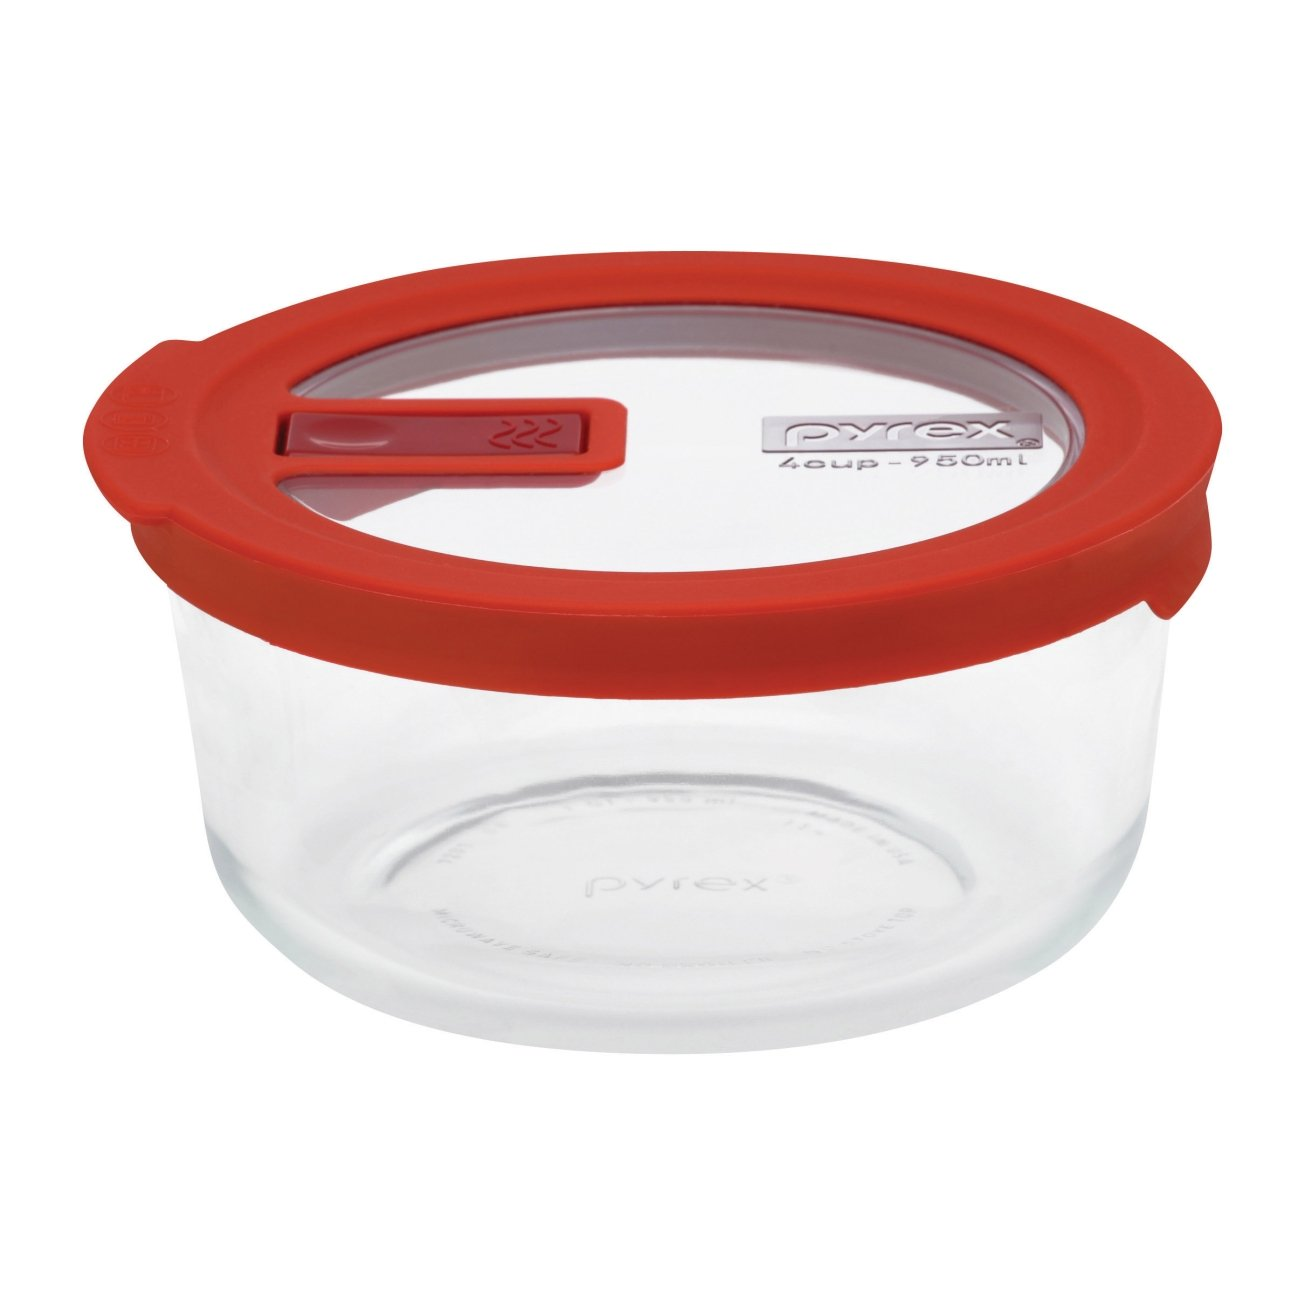 Charmant Amazon.com: Pyrex No Leak Lid 7 Cup Round Storage Container U2011 Red: Kitchen  U0026 Dining